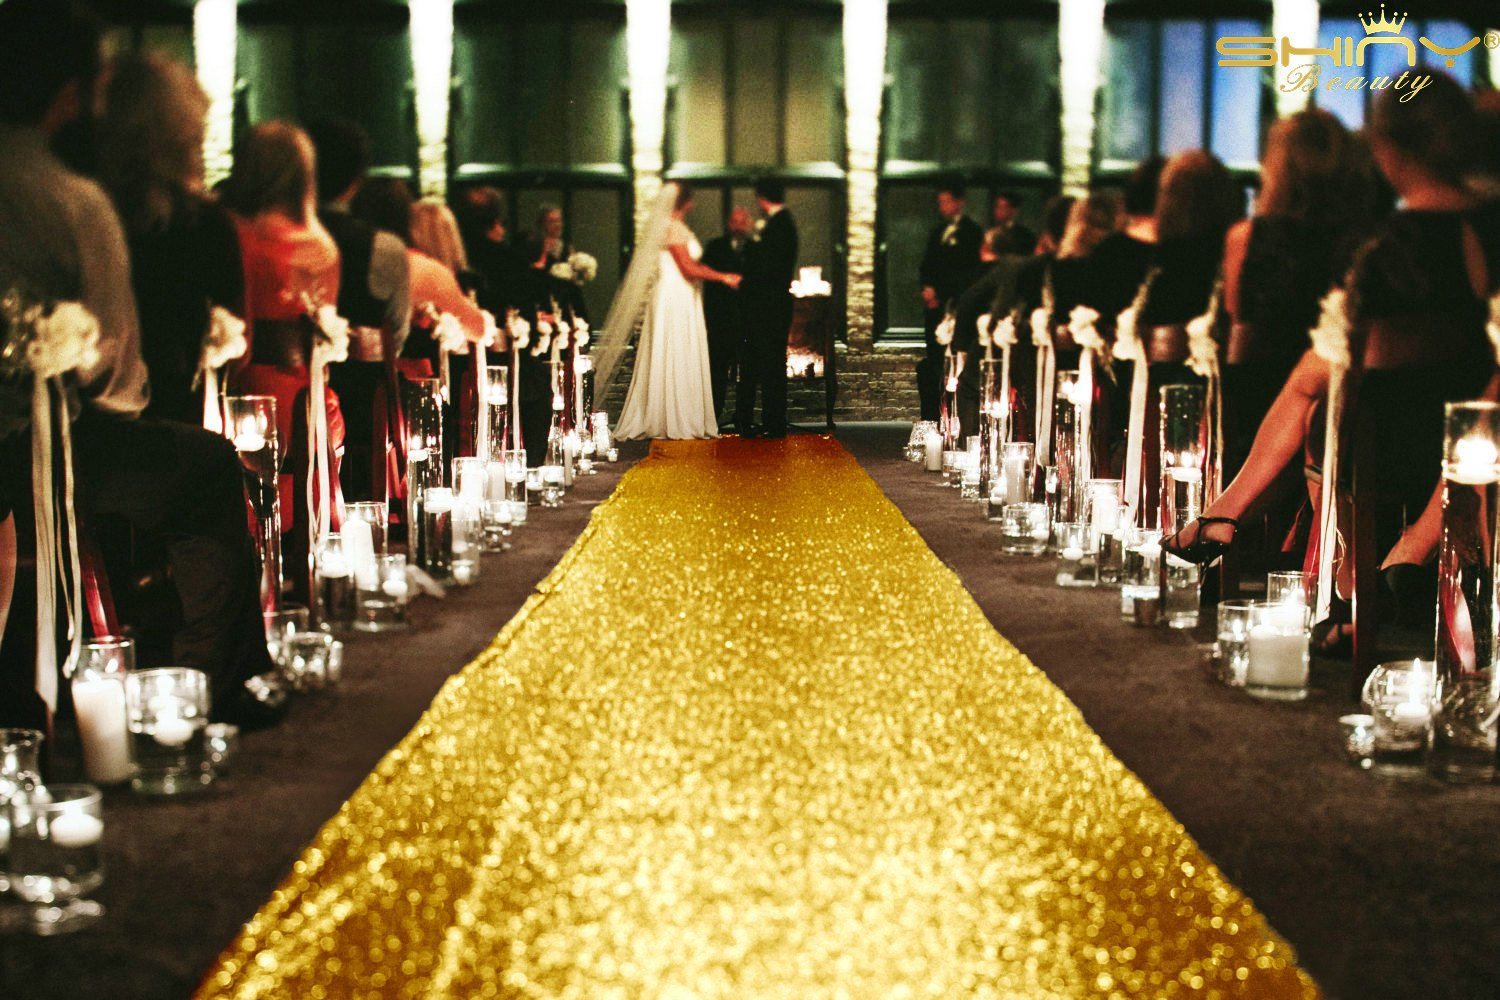 Sequin Aisles Floor Runner-Gold-4FTX40FT Wedding Aisle Runner, Glitter Carpert Runner, Wedding Ceremony Decor (Gold) by ShiDianYi